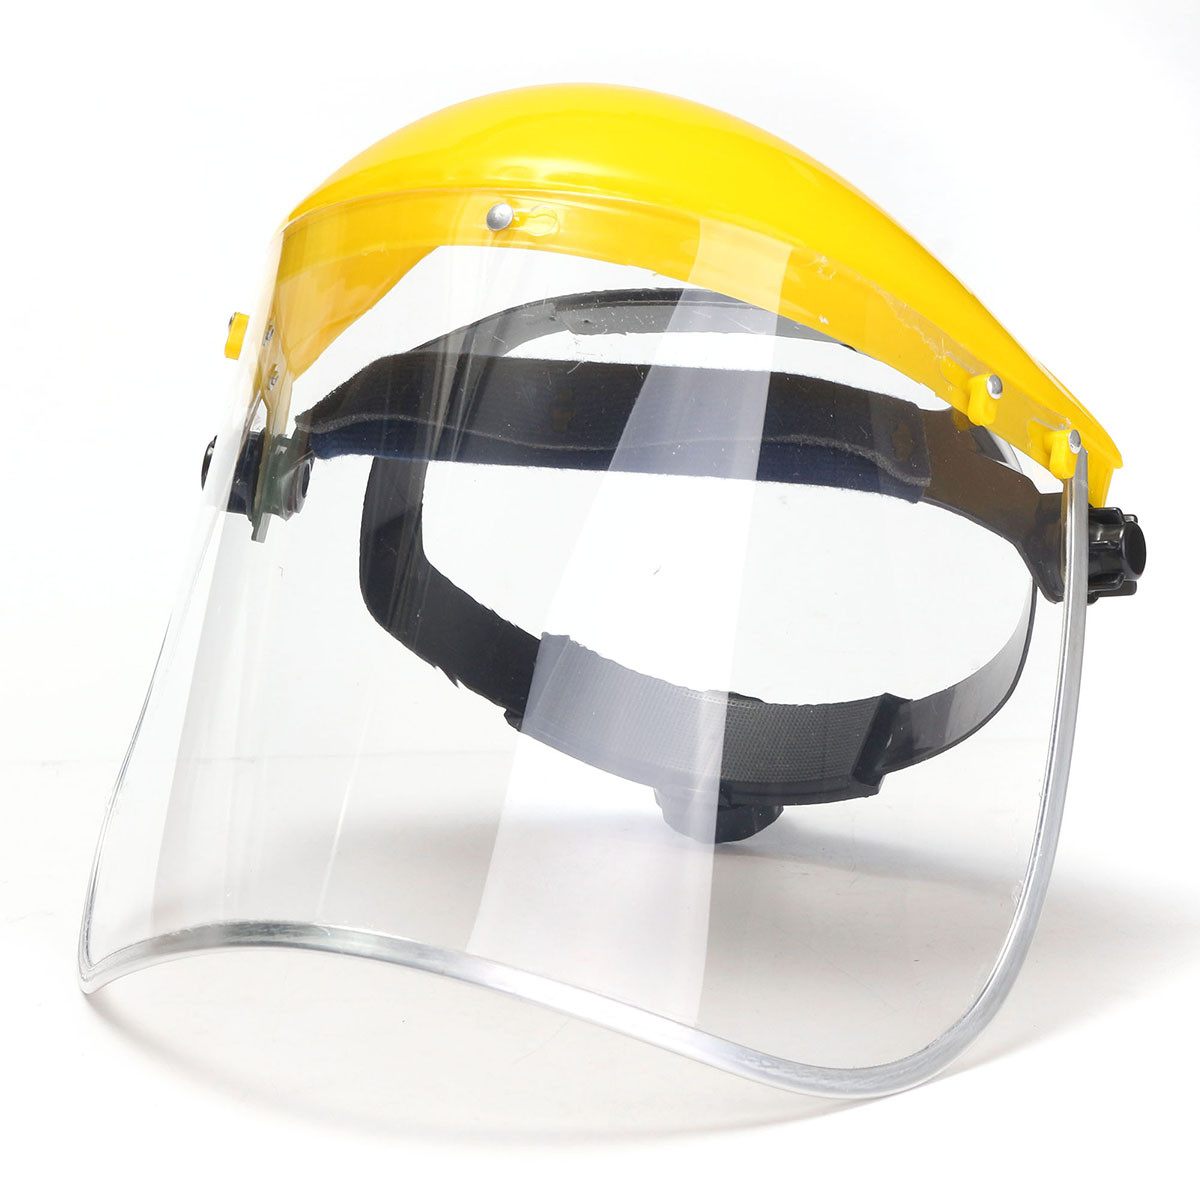 Transparent PVC Safety Faces Shields Screen Spare Visors For Head Mask Eye Faces Protection 33x20.3cm